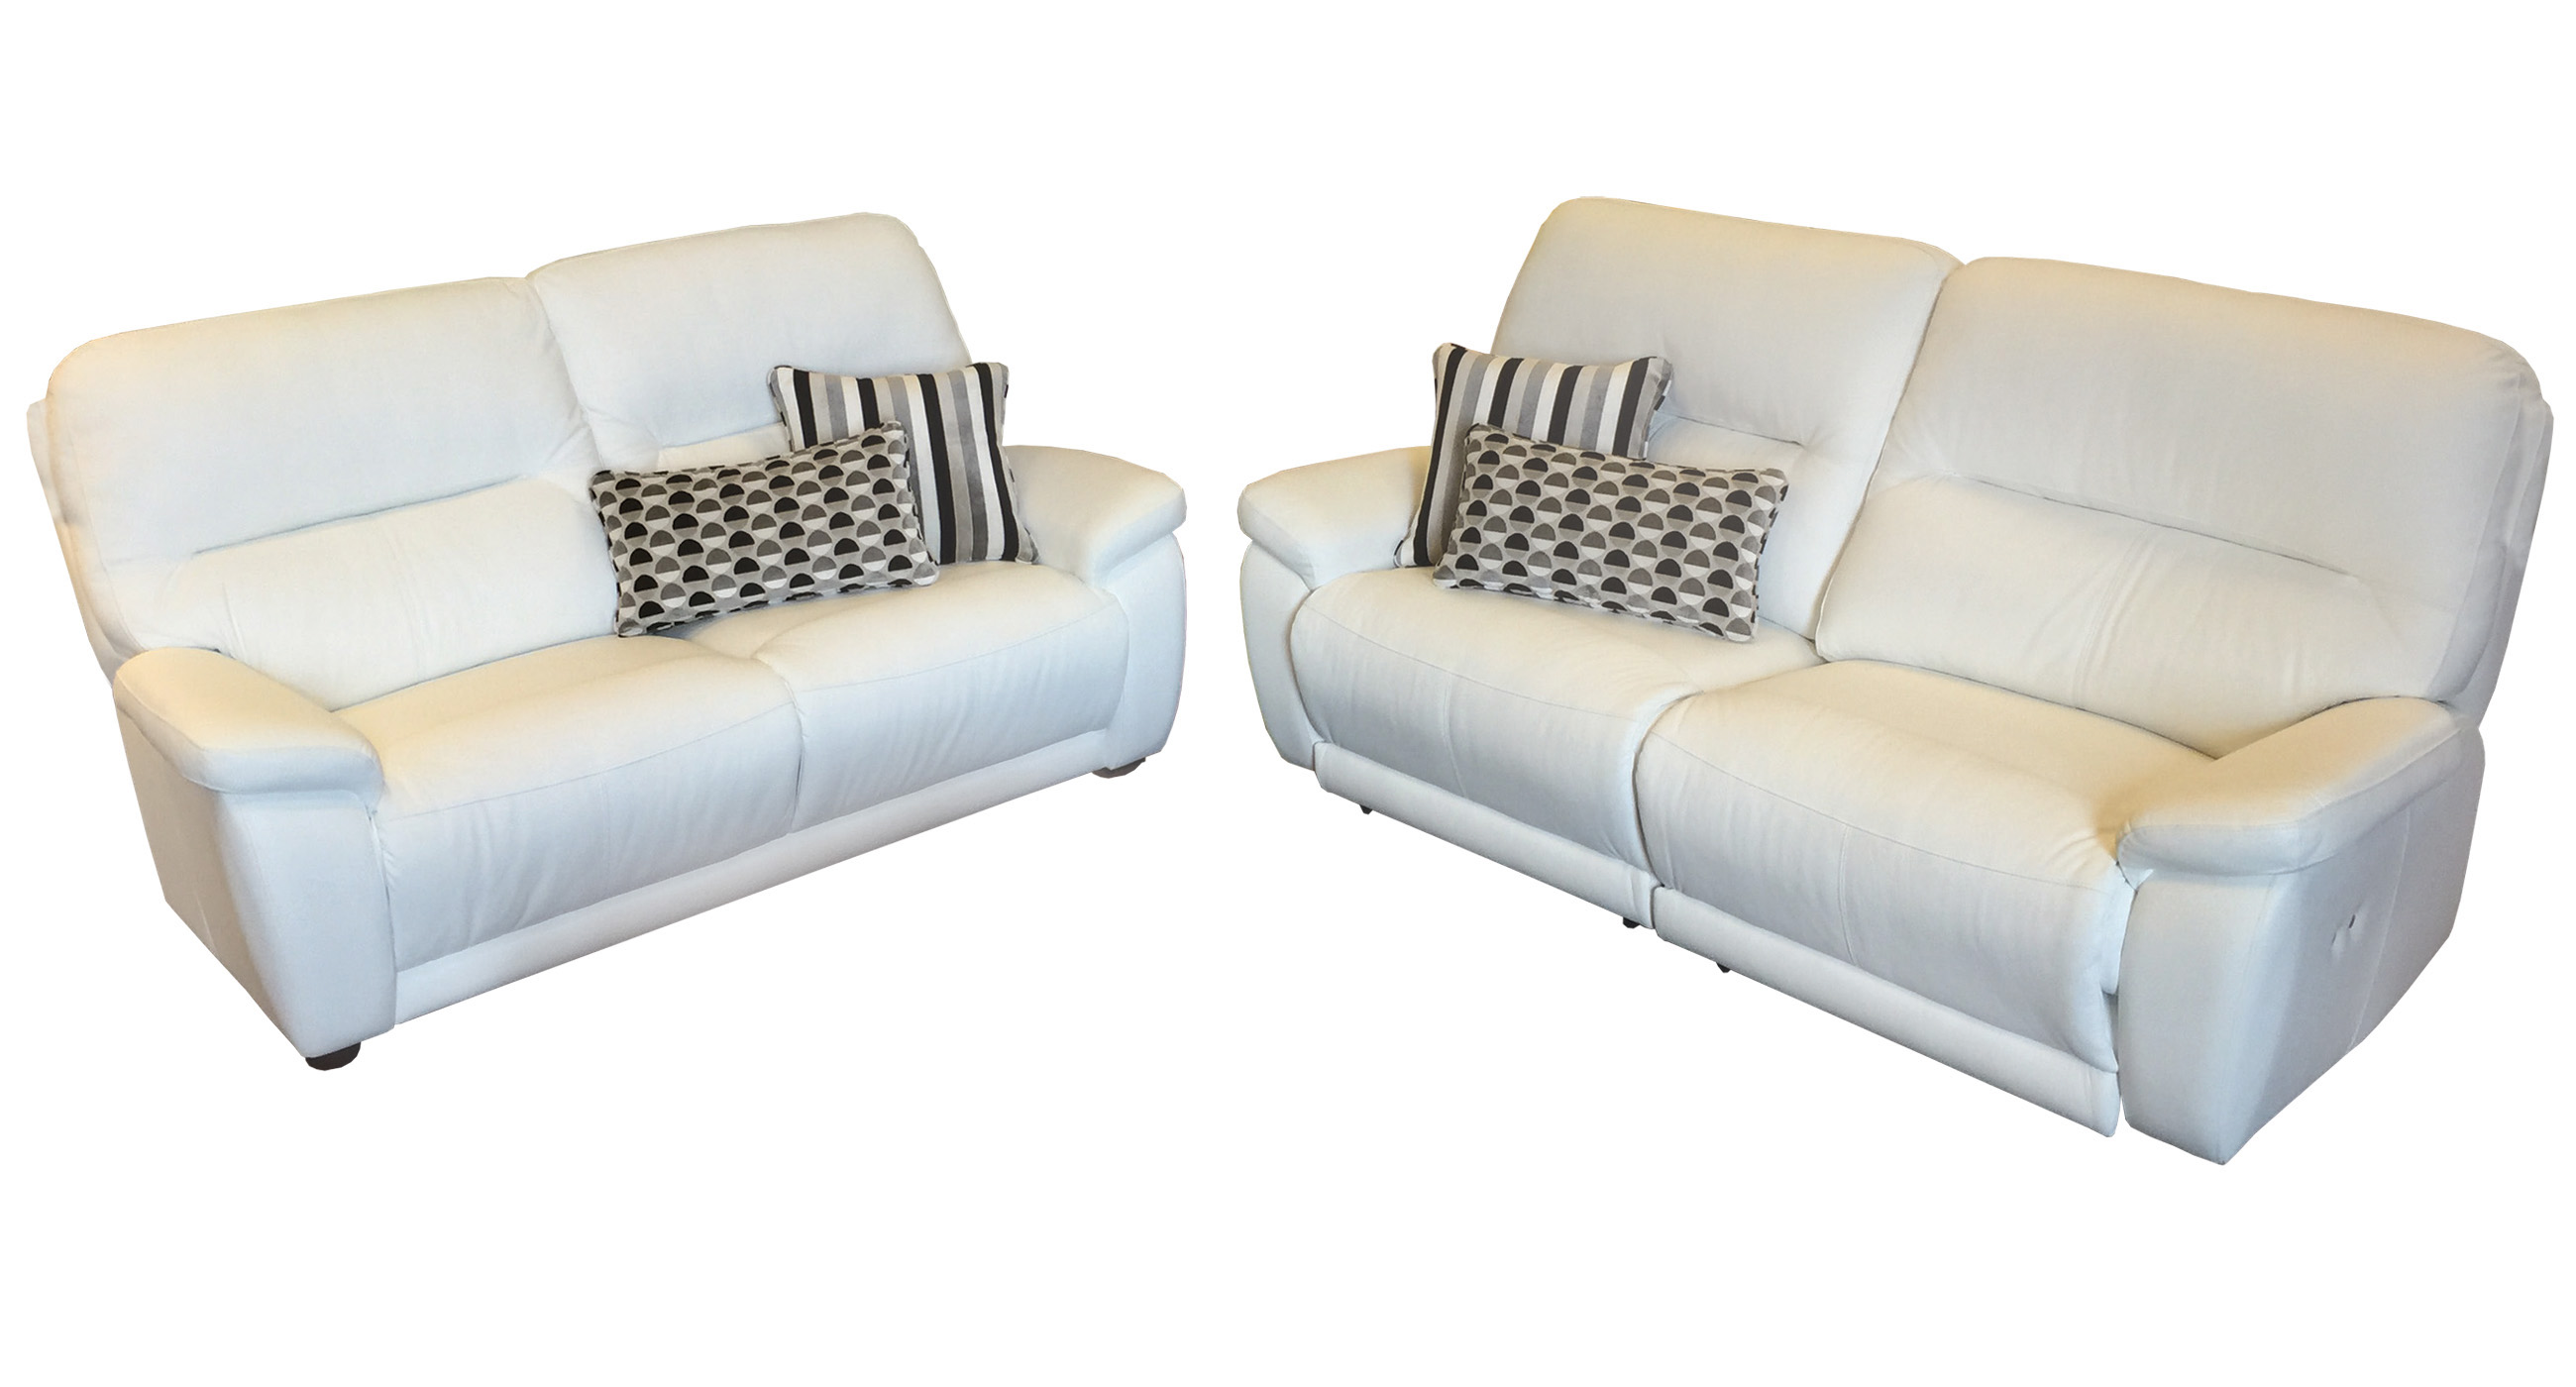 Hudson Reclining Sofa and Chairs